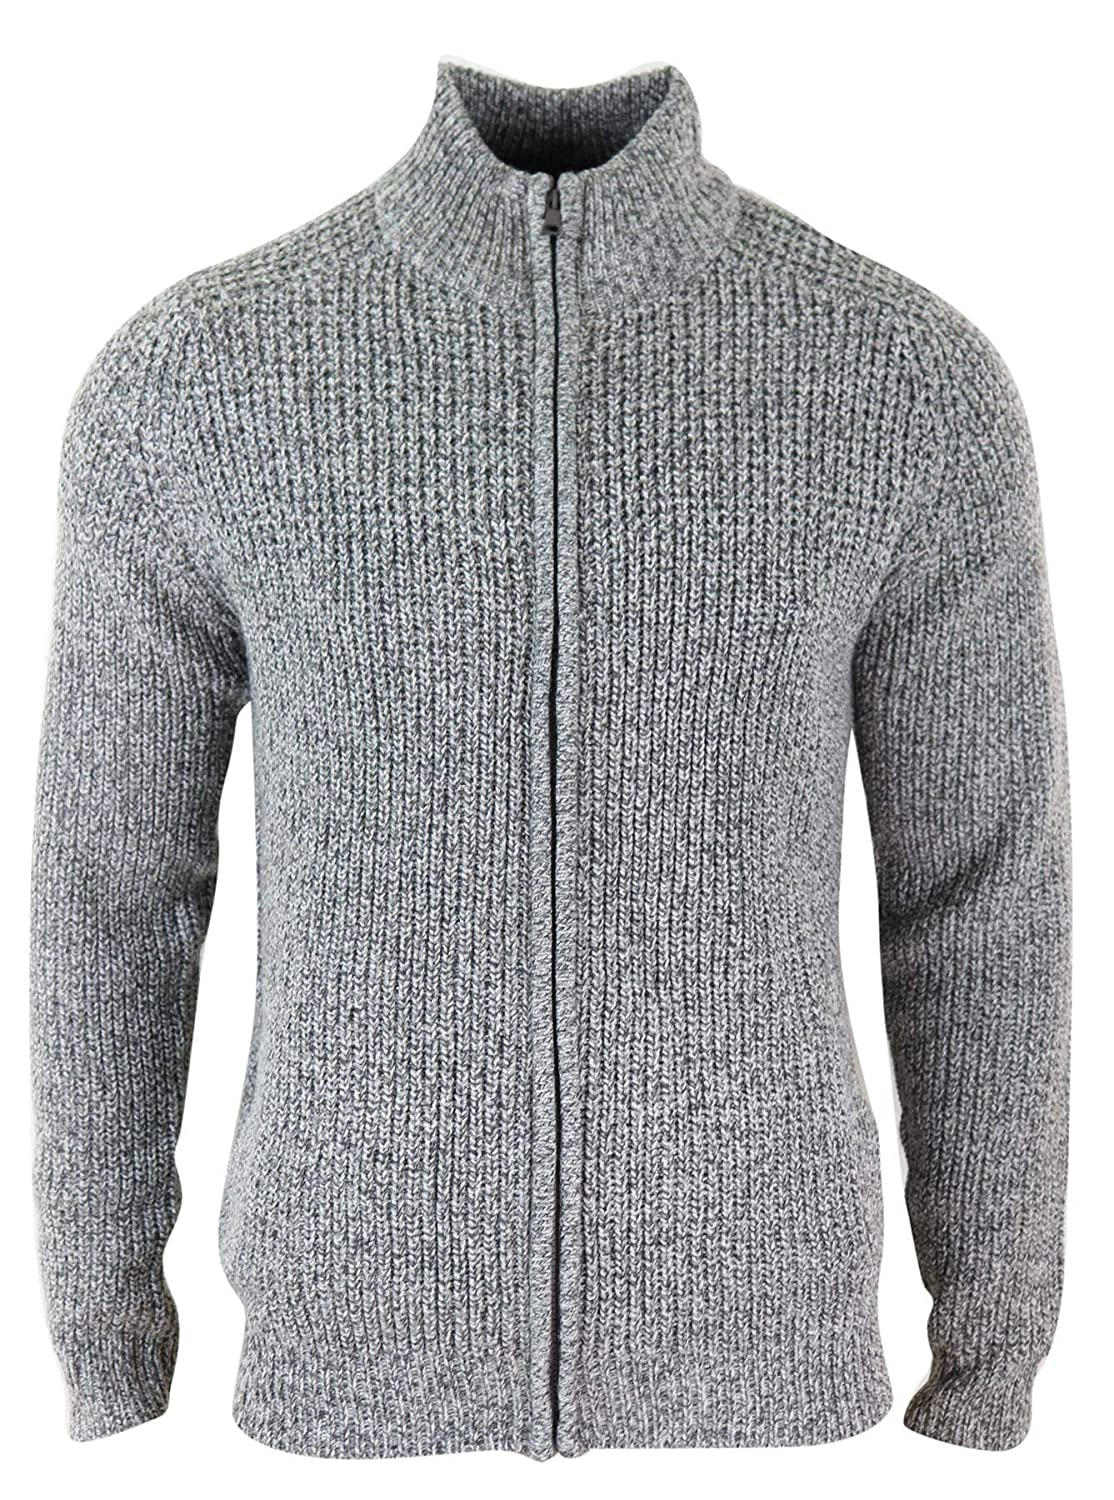 Mens Zipped Jumper Cardigan Knitted Chunky Smart Casual Regular Fit